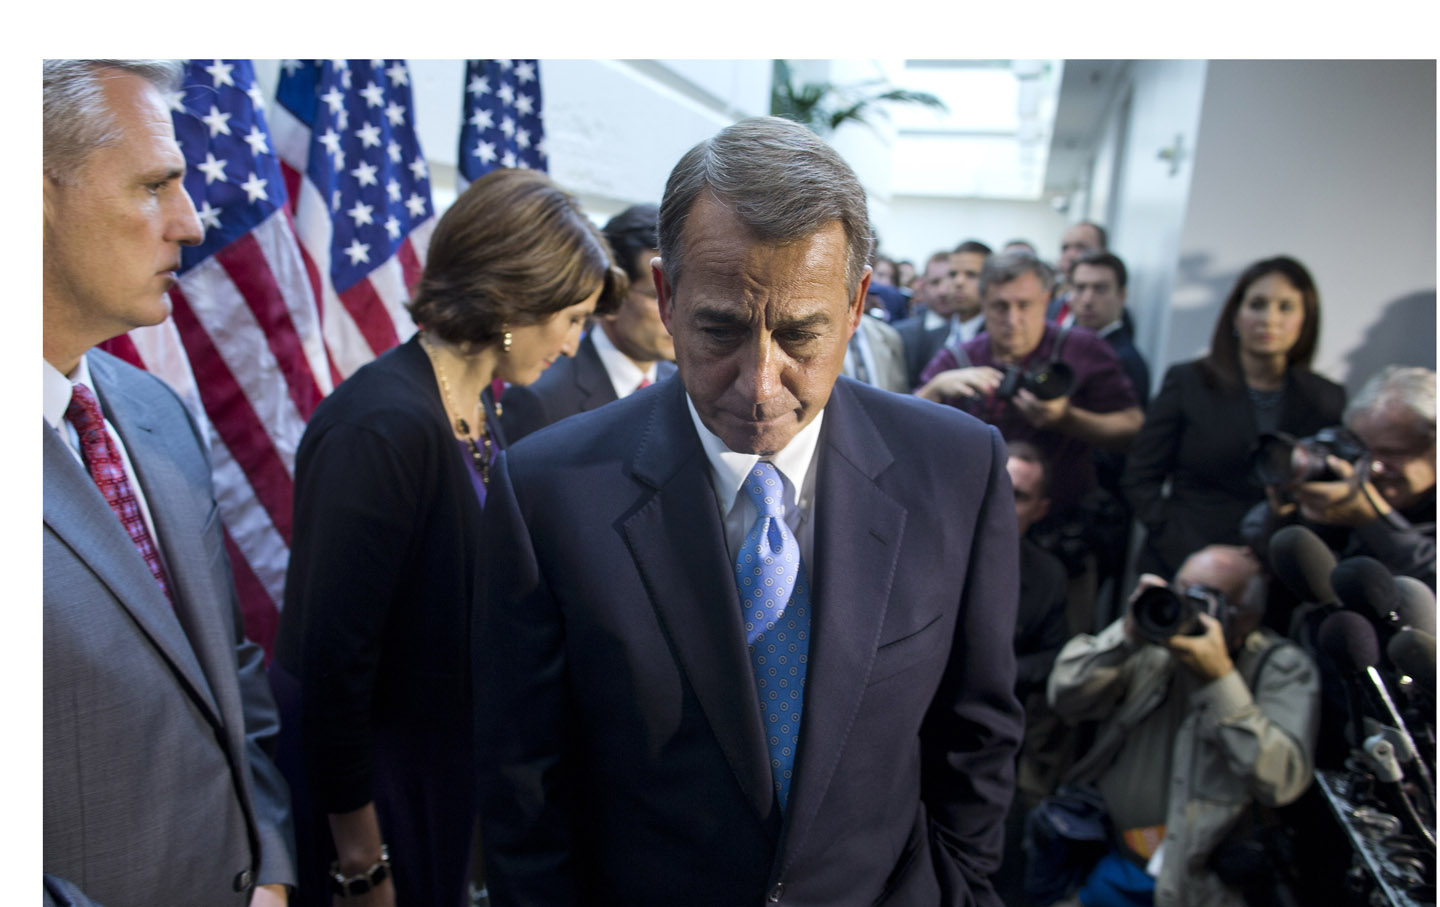 Speaker of the House Rep. John Boehner, R-Ohio, walks away from the microphone during a news conference